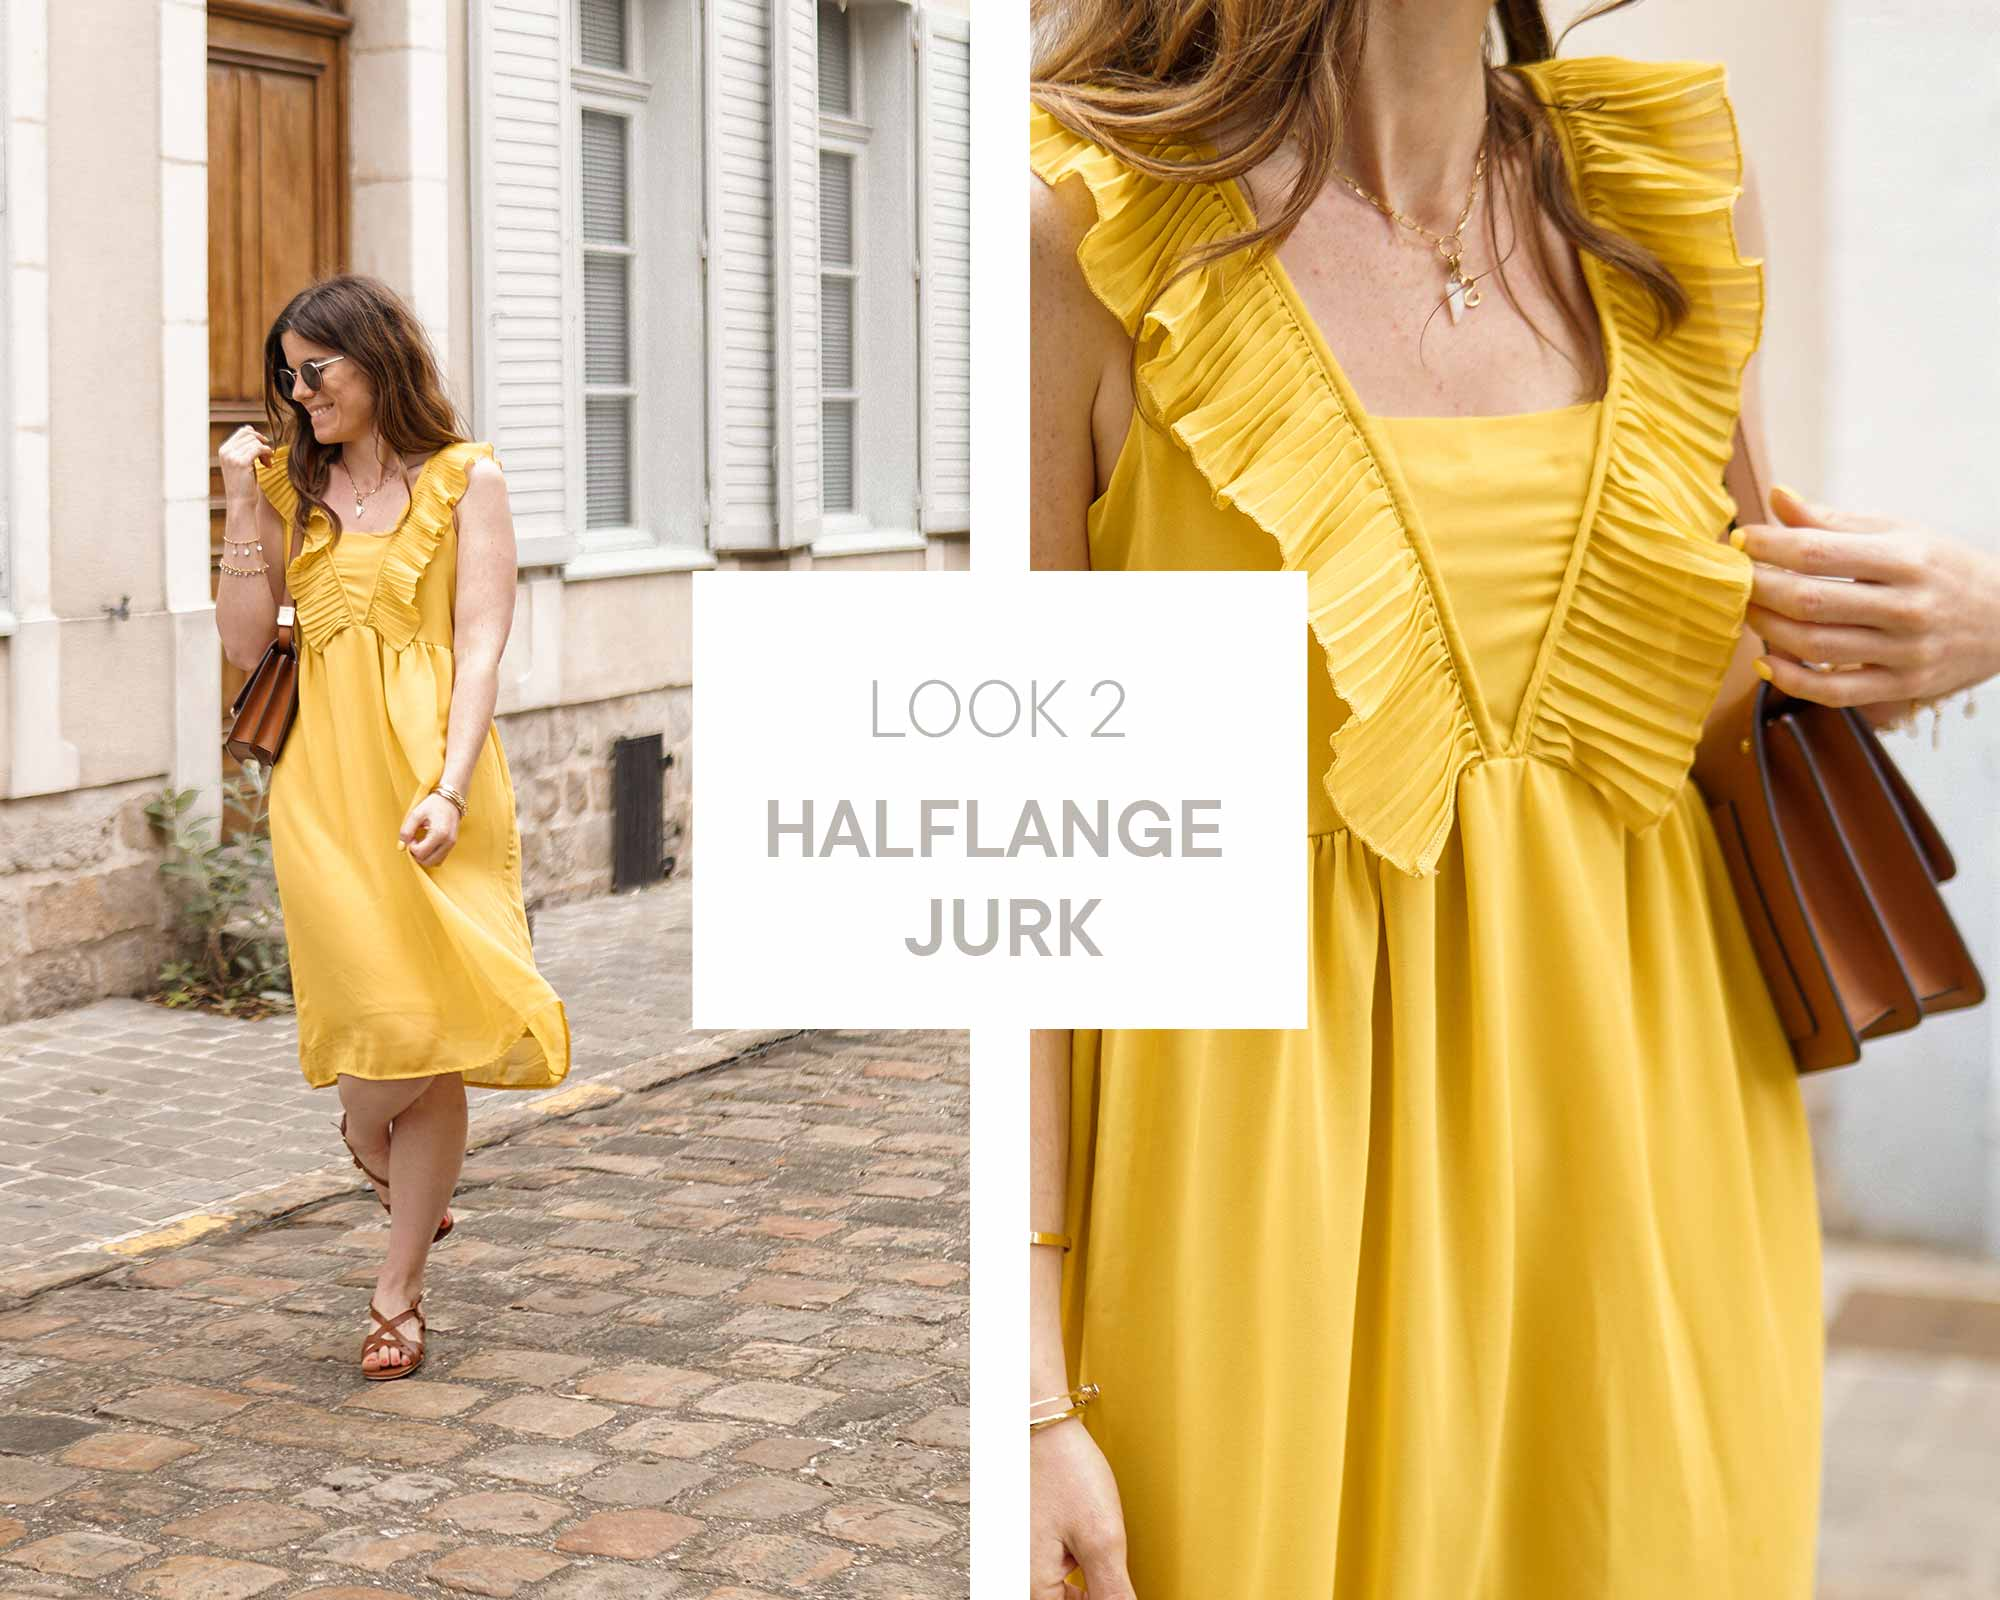 alexia wearing a yellow mini dress with brown sandals and brown handbag